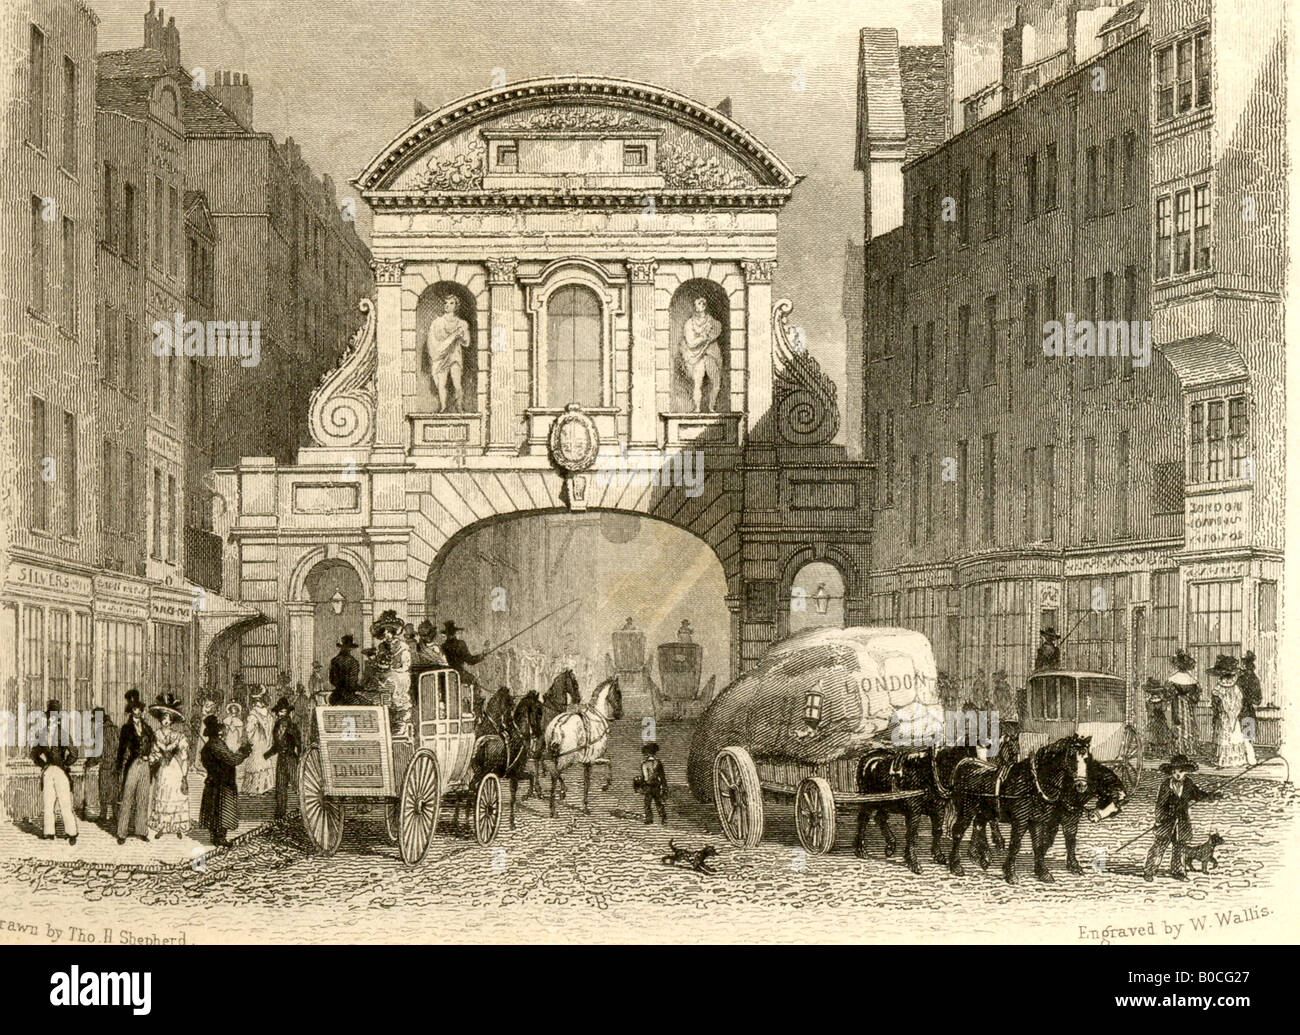 Engraving of Temple Bar, London 1878